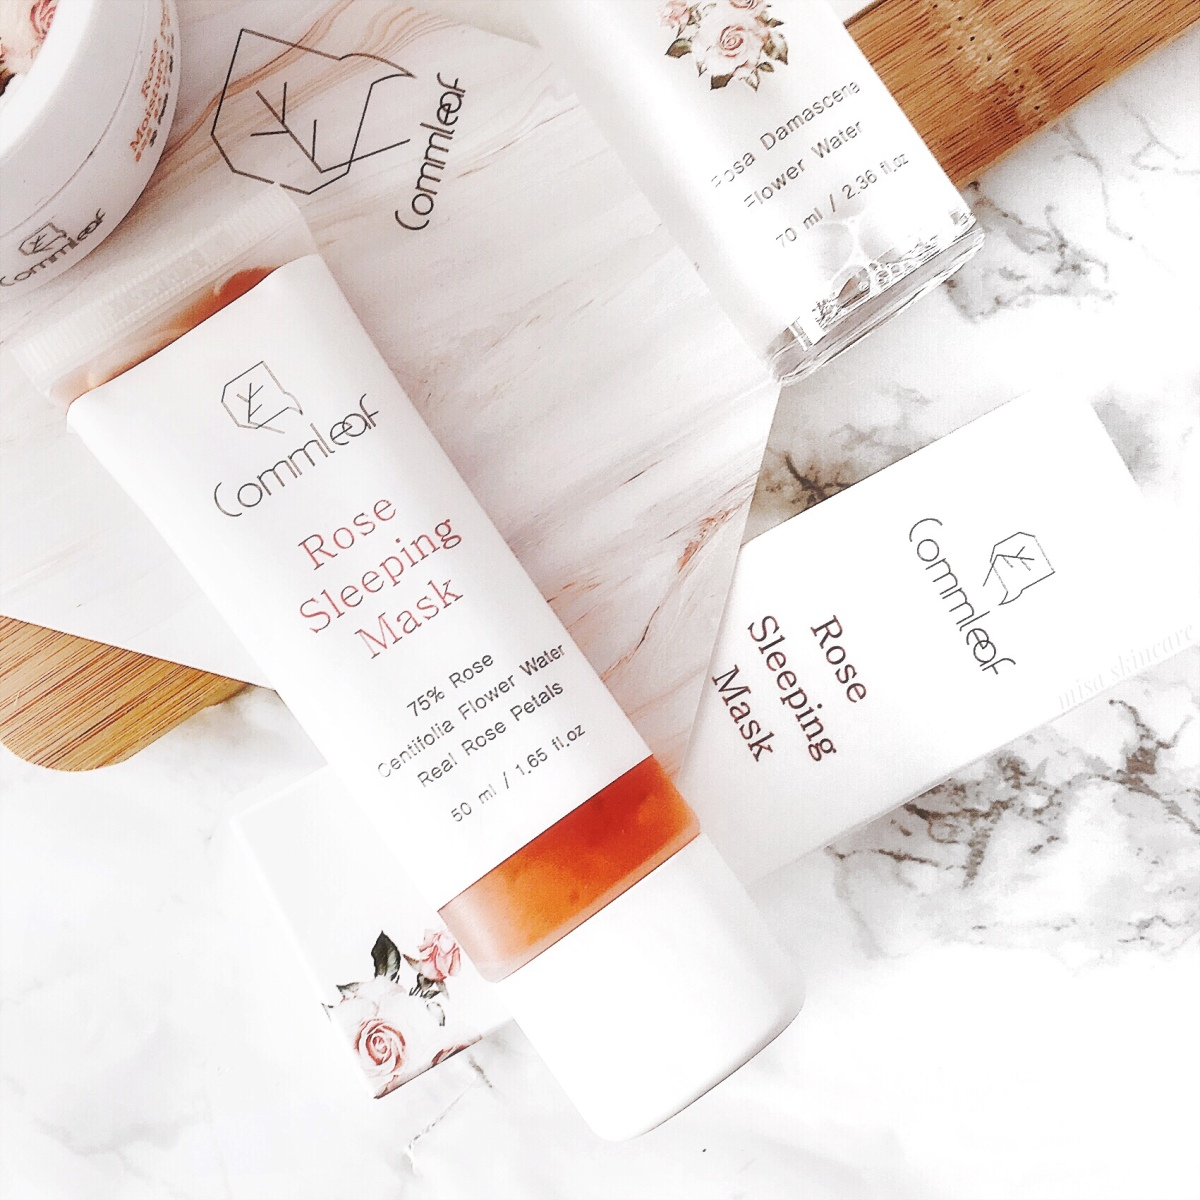 Bright, nourished&hydrated skin: review Commleaf Rose Sleeping Mask*